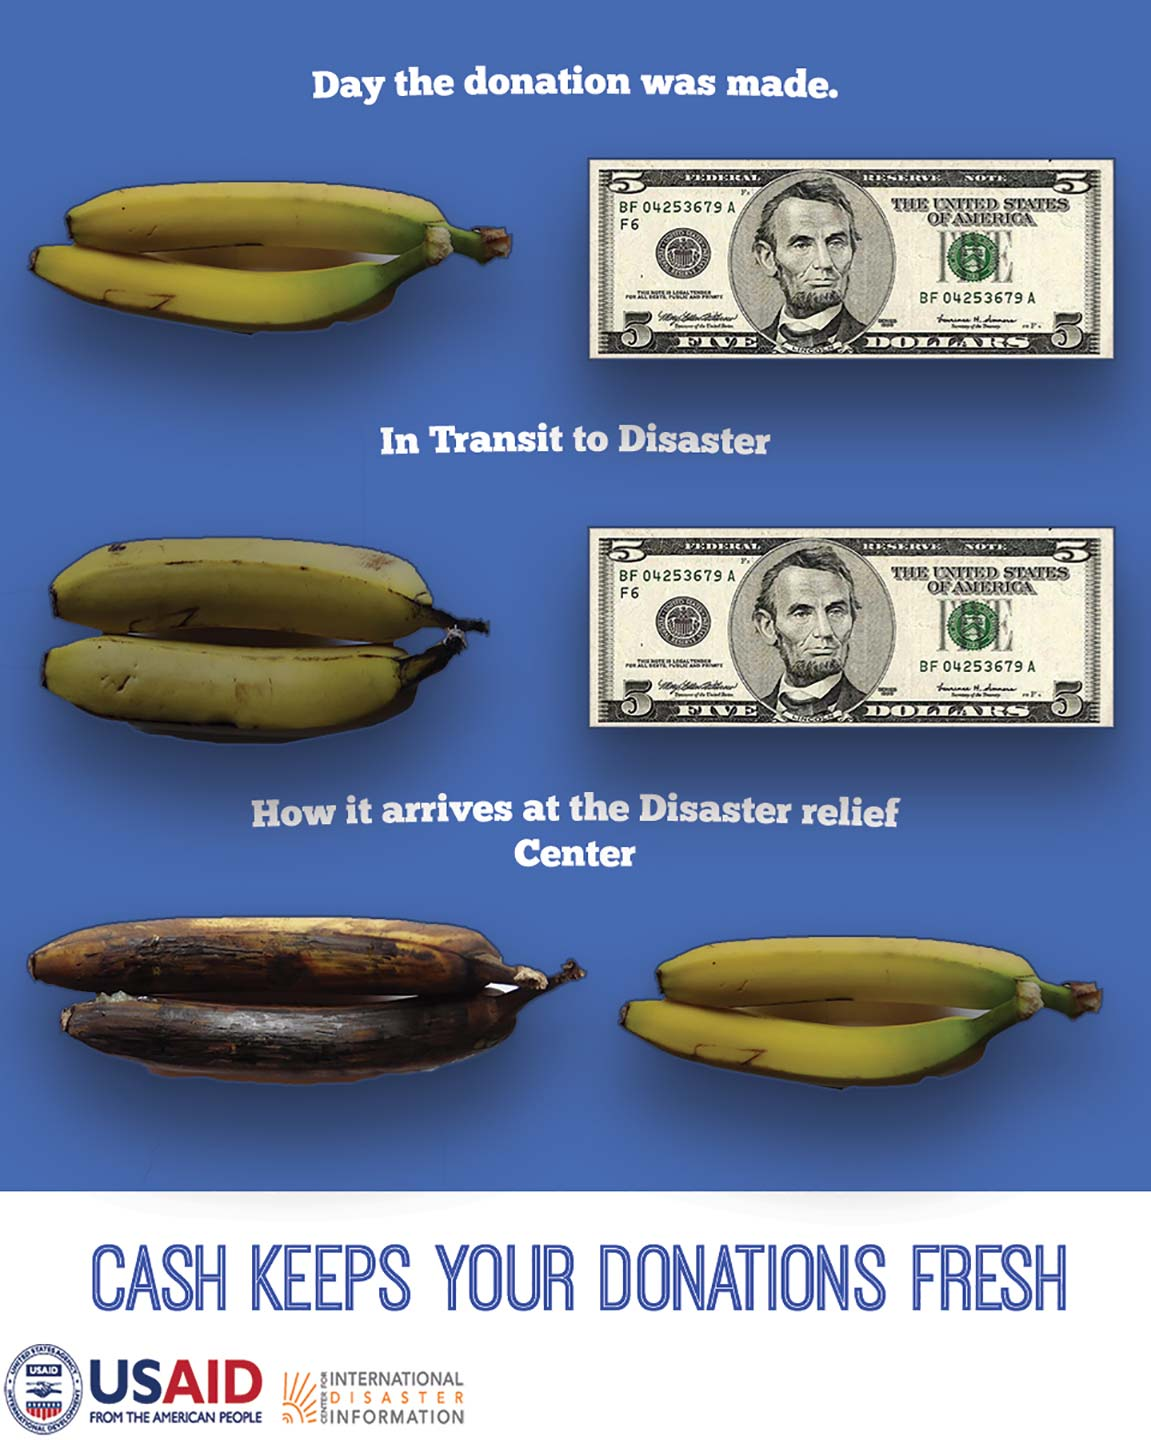 Cash Keeps Your Donations Fresh